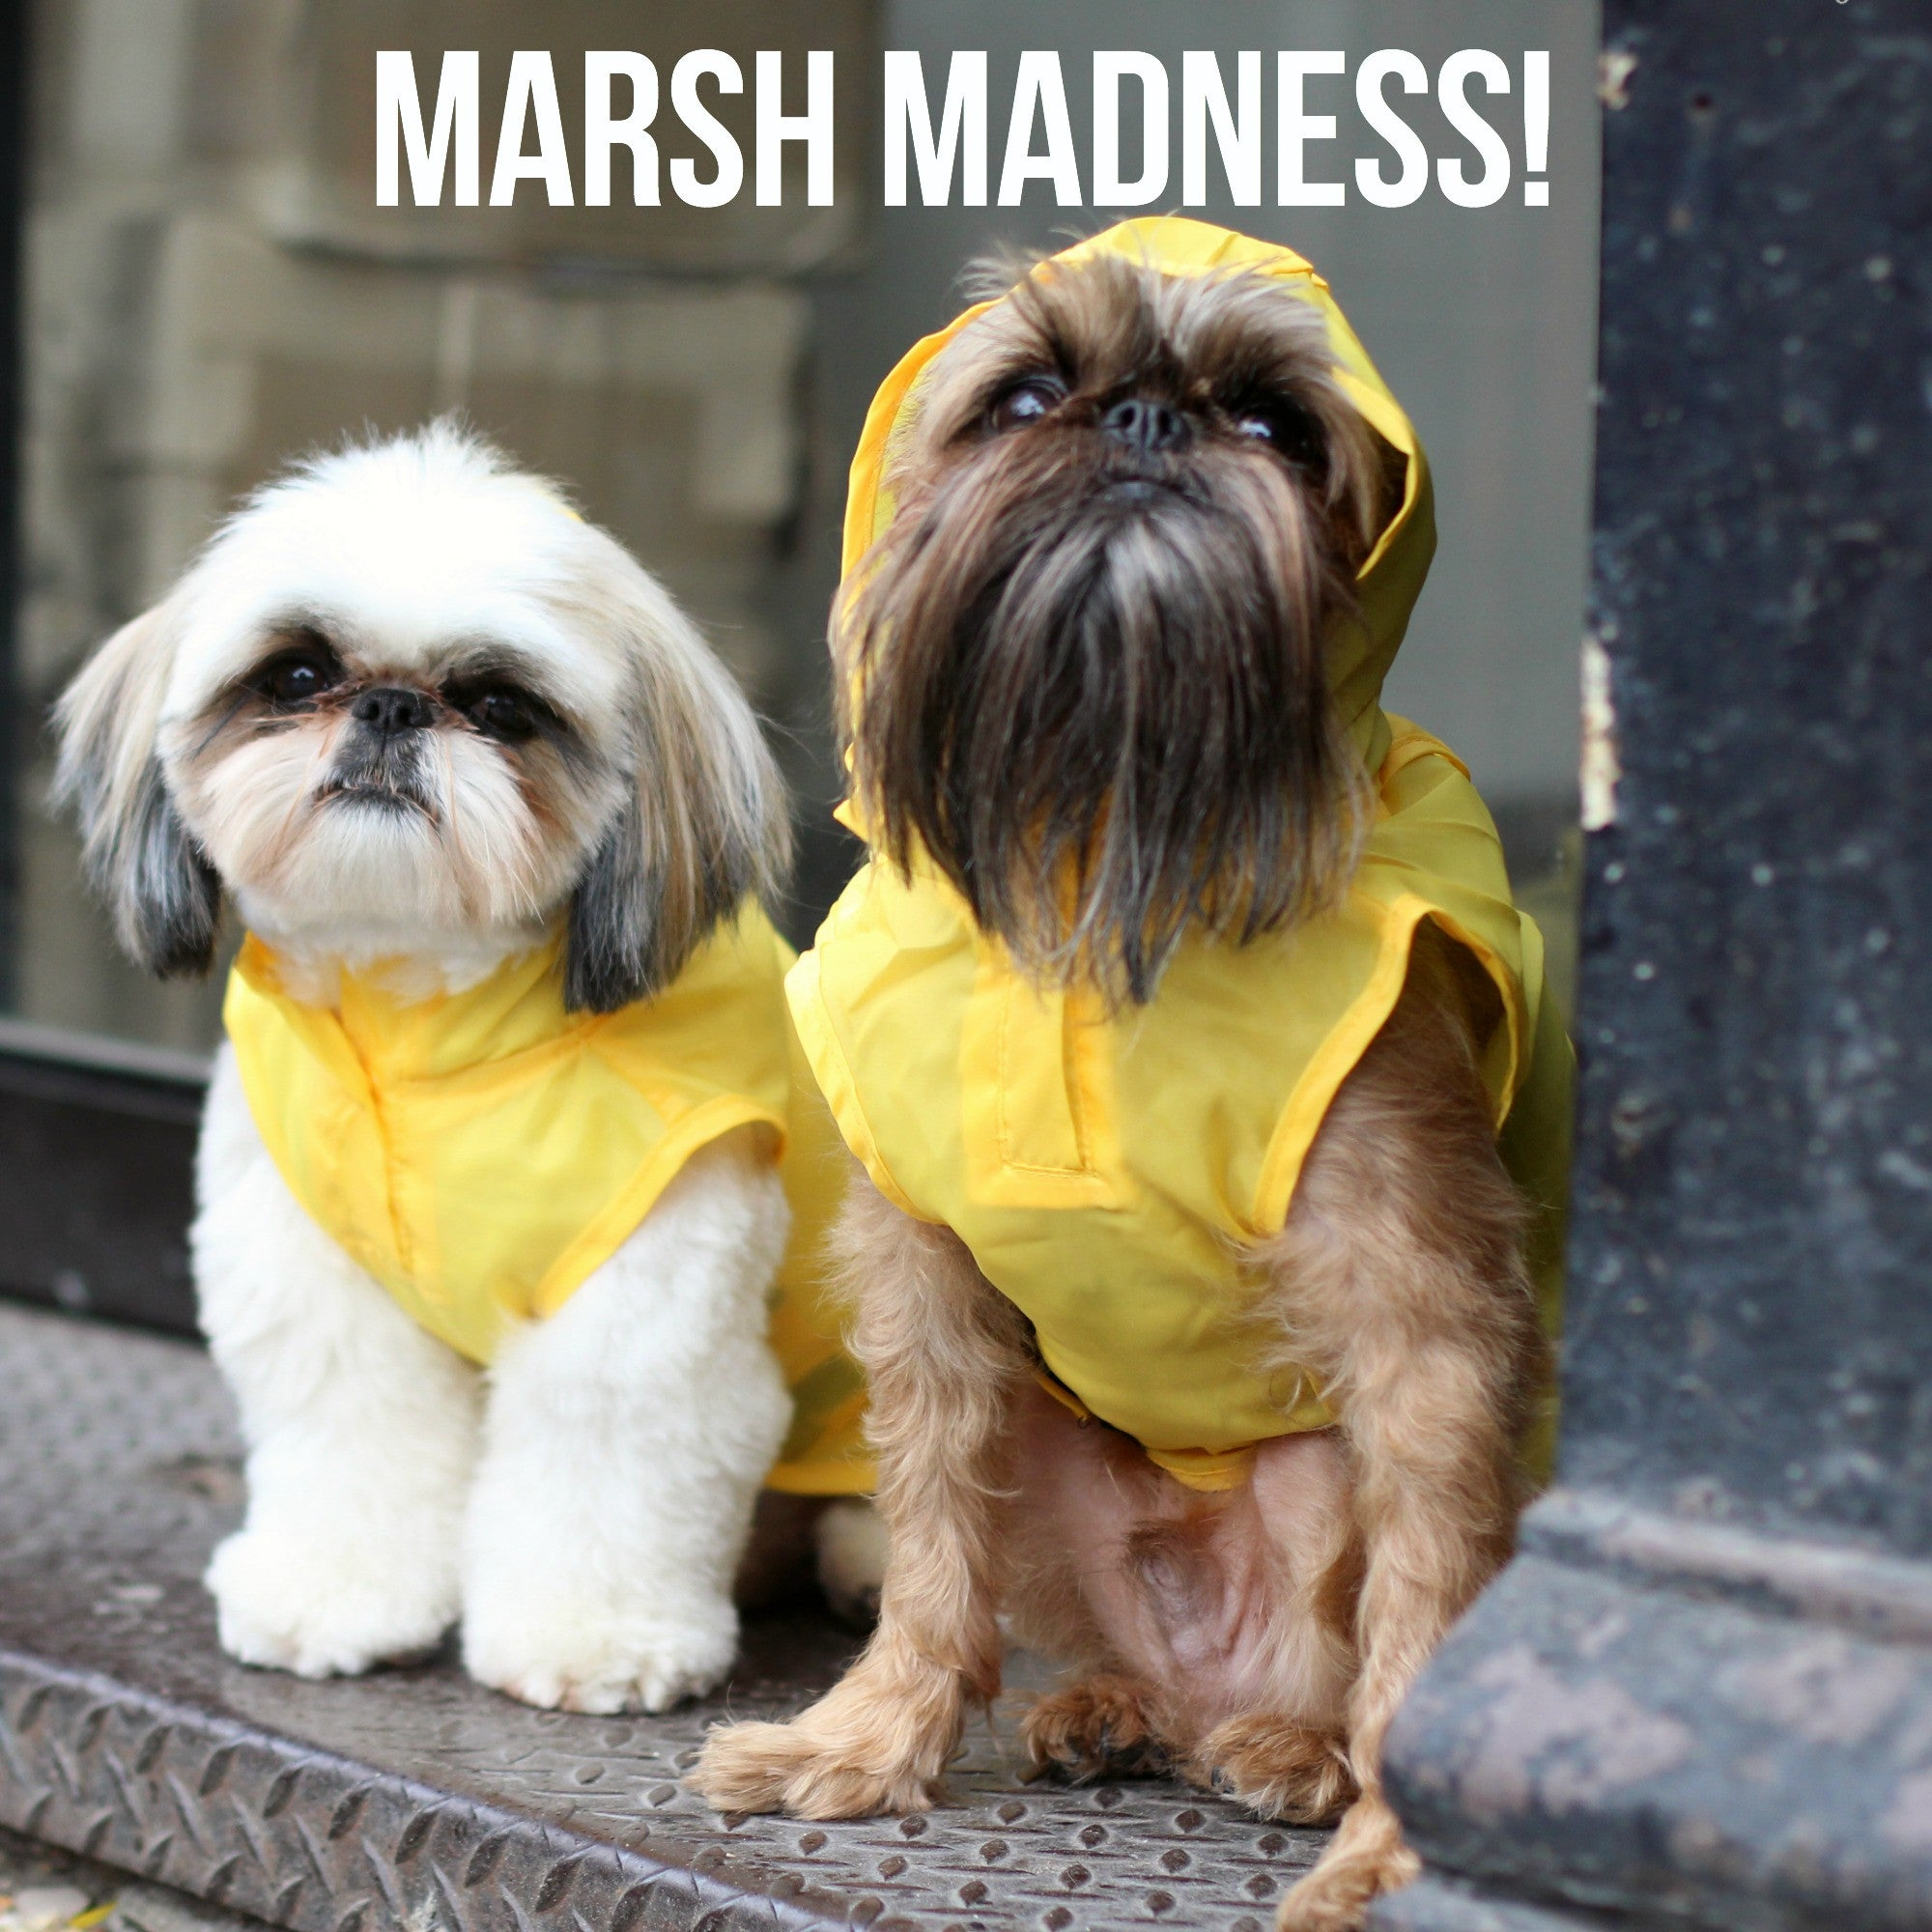 Marsh Madness ends with a Dog with a Cool Beard! COOL!